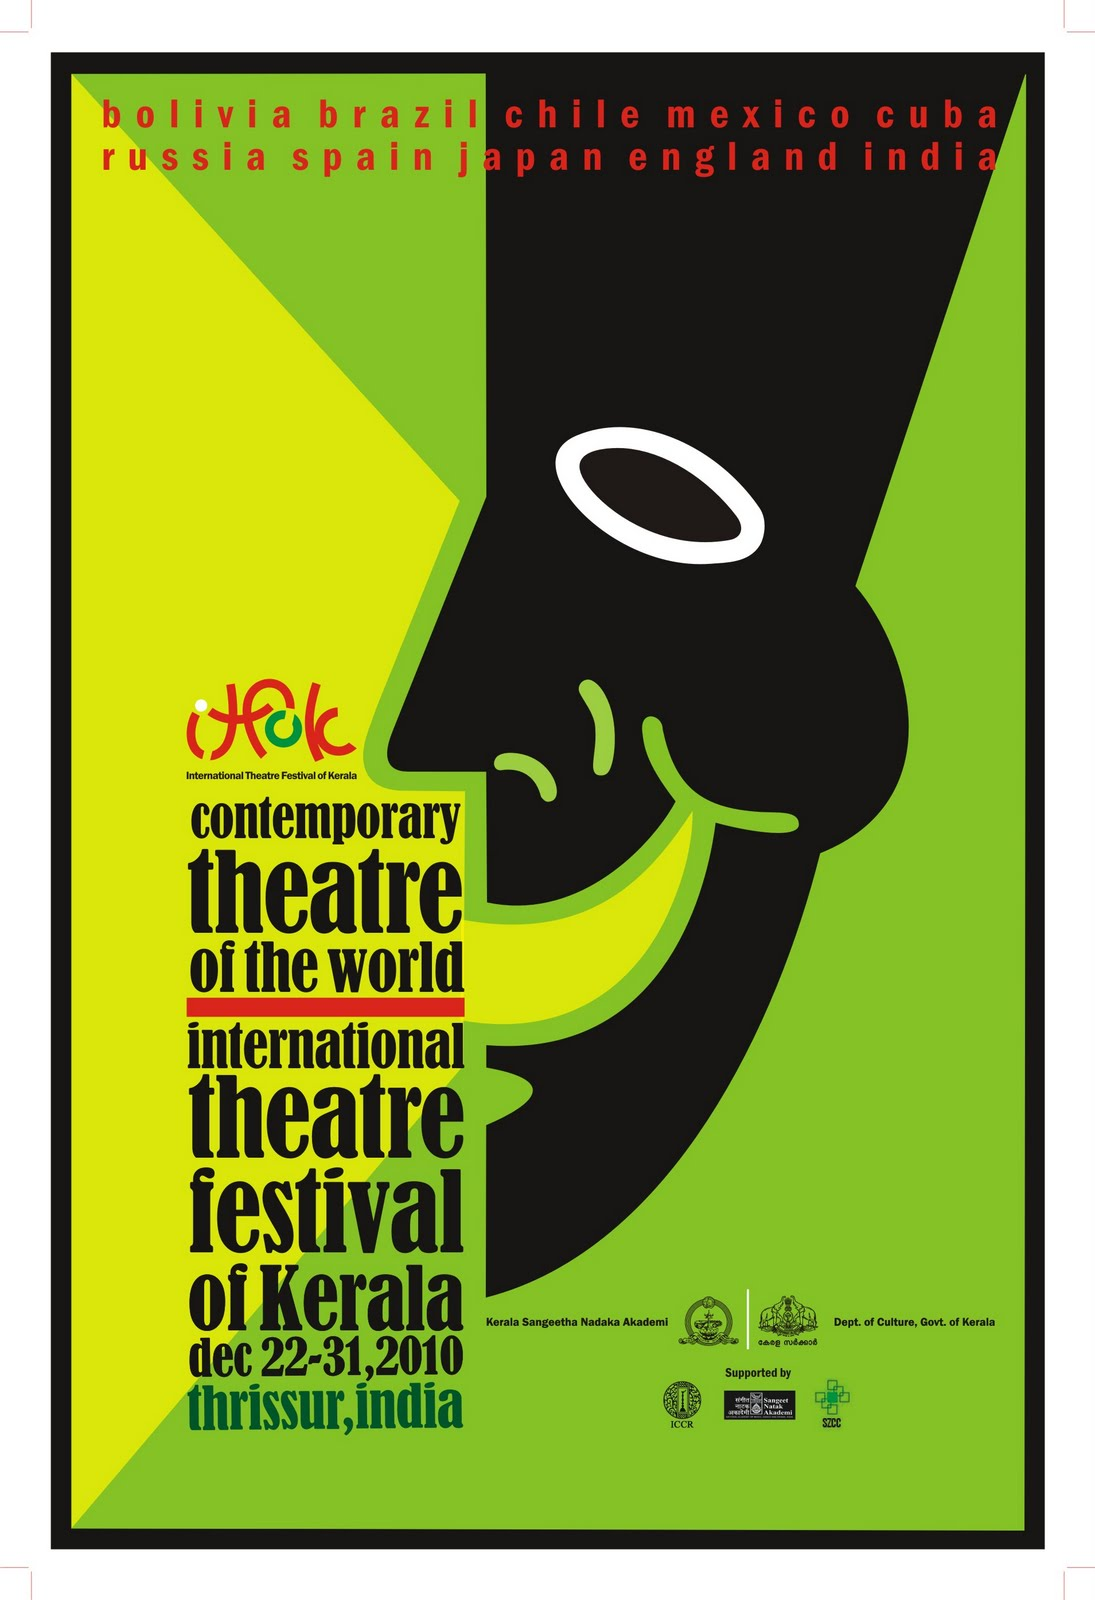 Posted By Kerala Theatre Festival